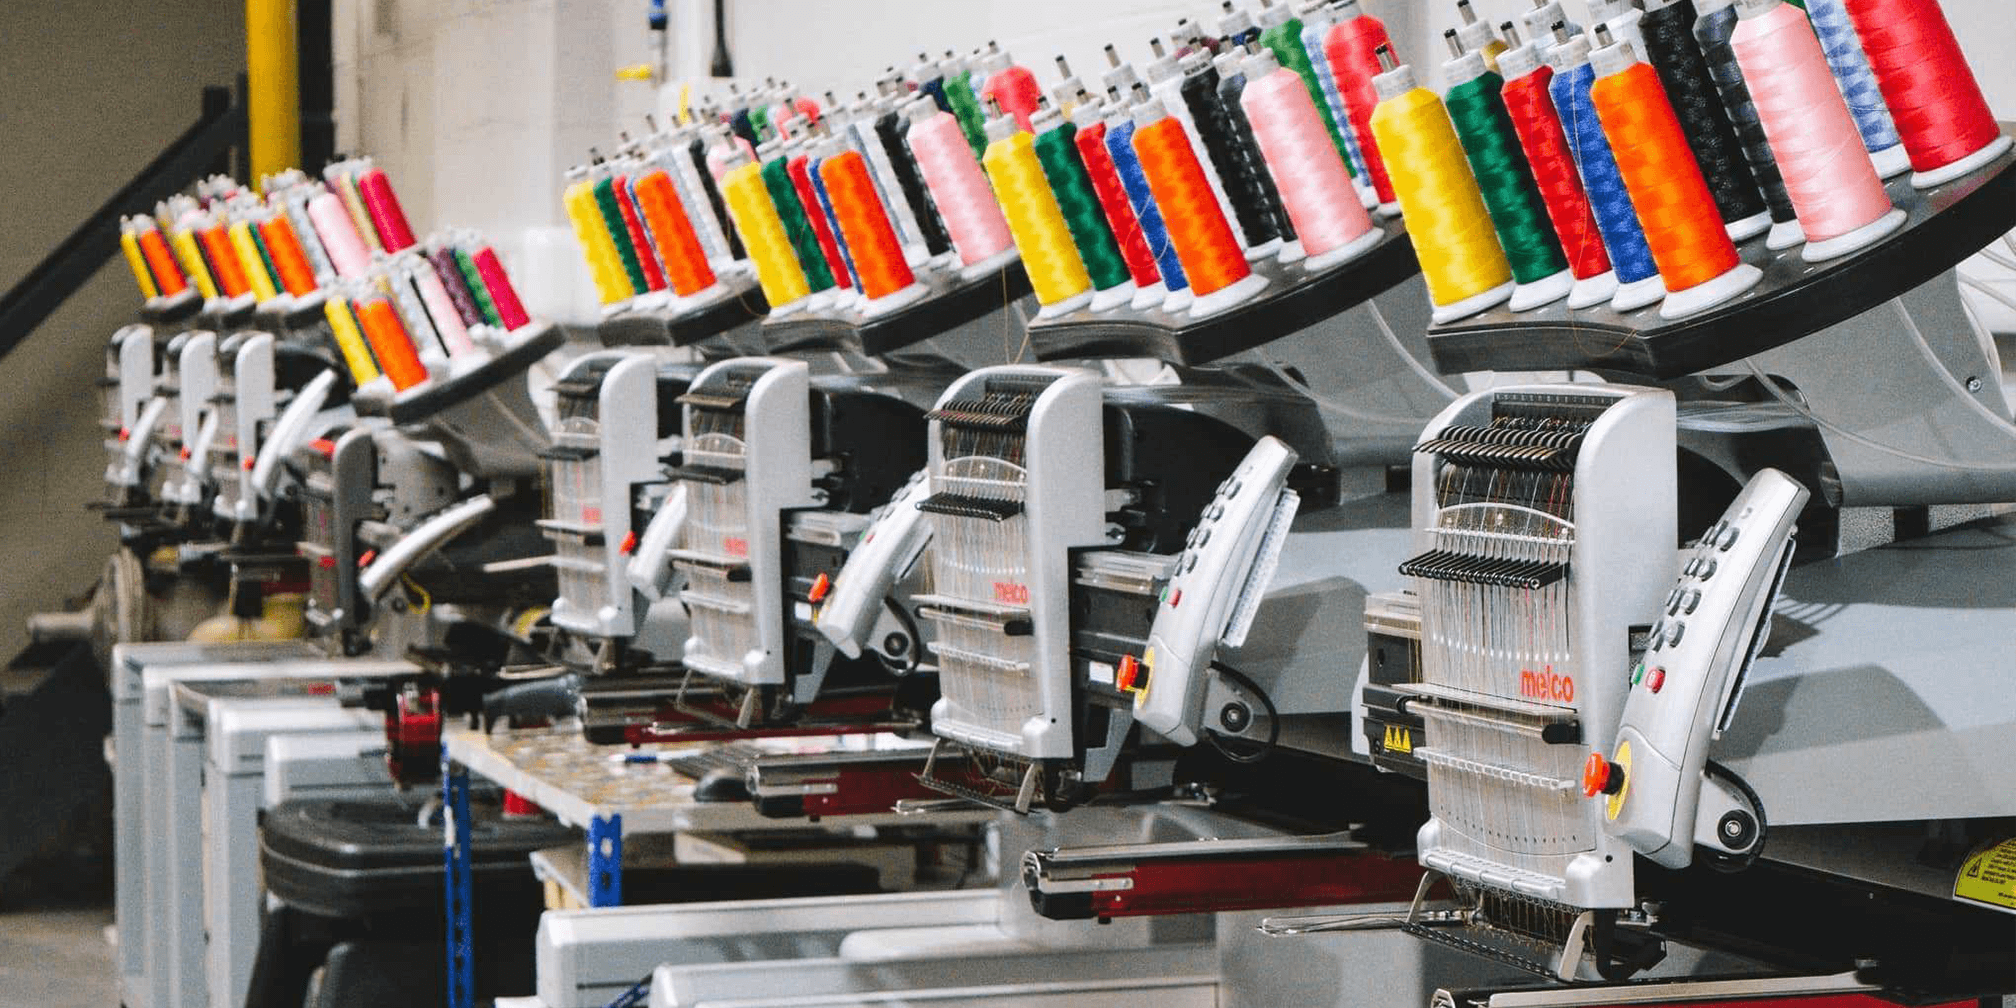 inkthreadable's eight embroidery machines